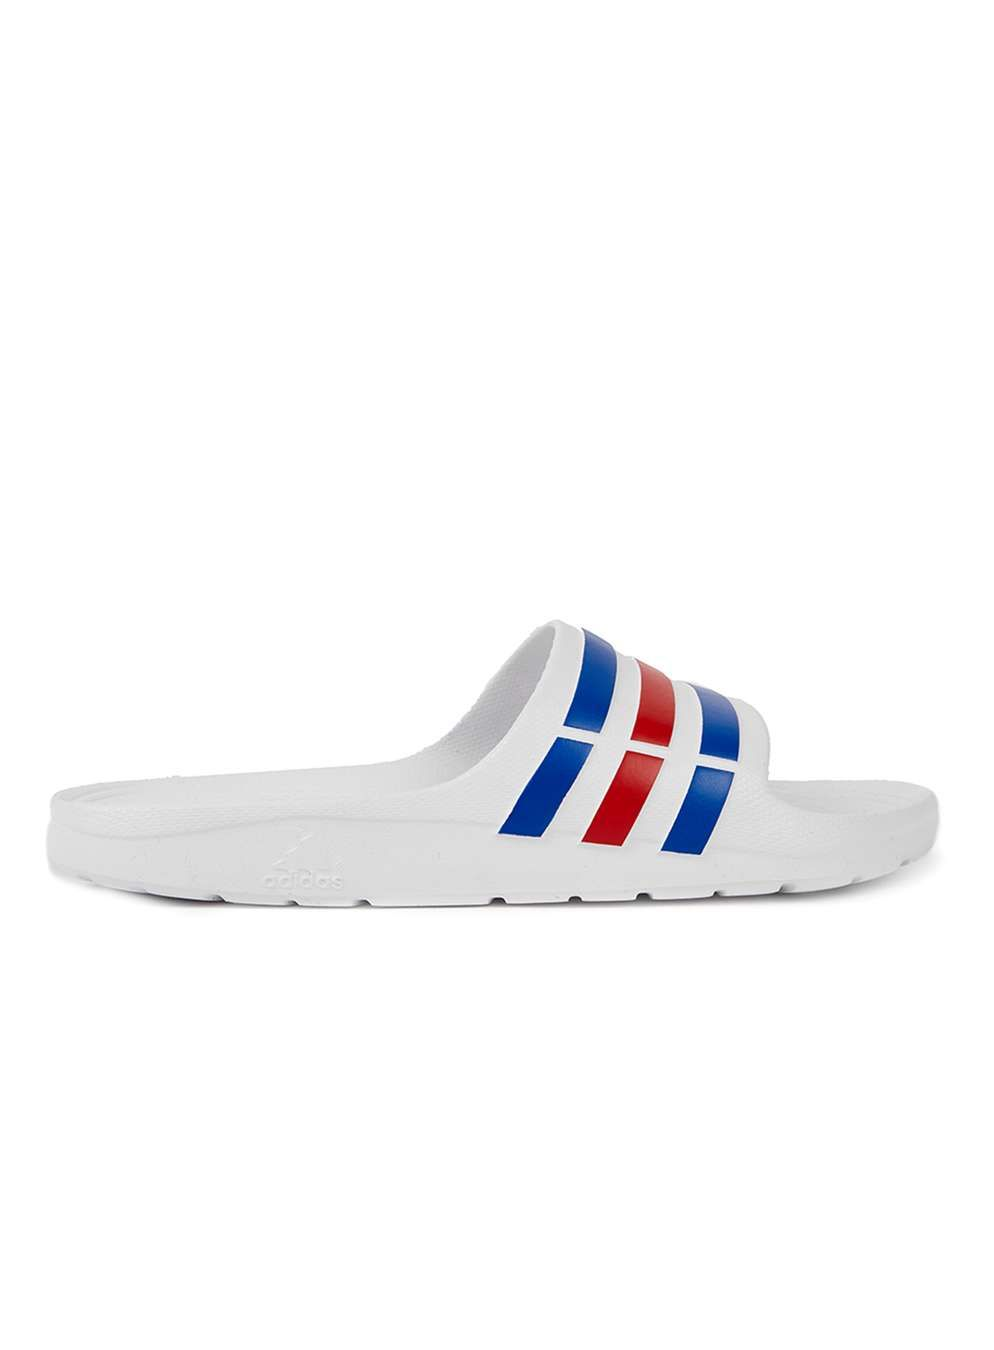 47a813e7c5f Adidas Neo Duramo White, Blue and Red Sliders - Adidas - Brands ...